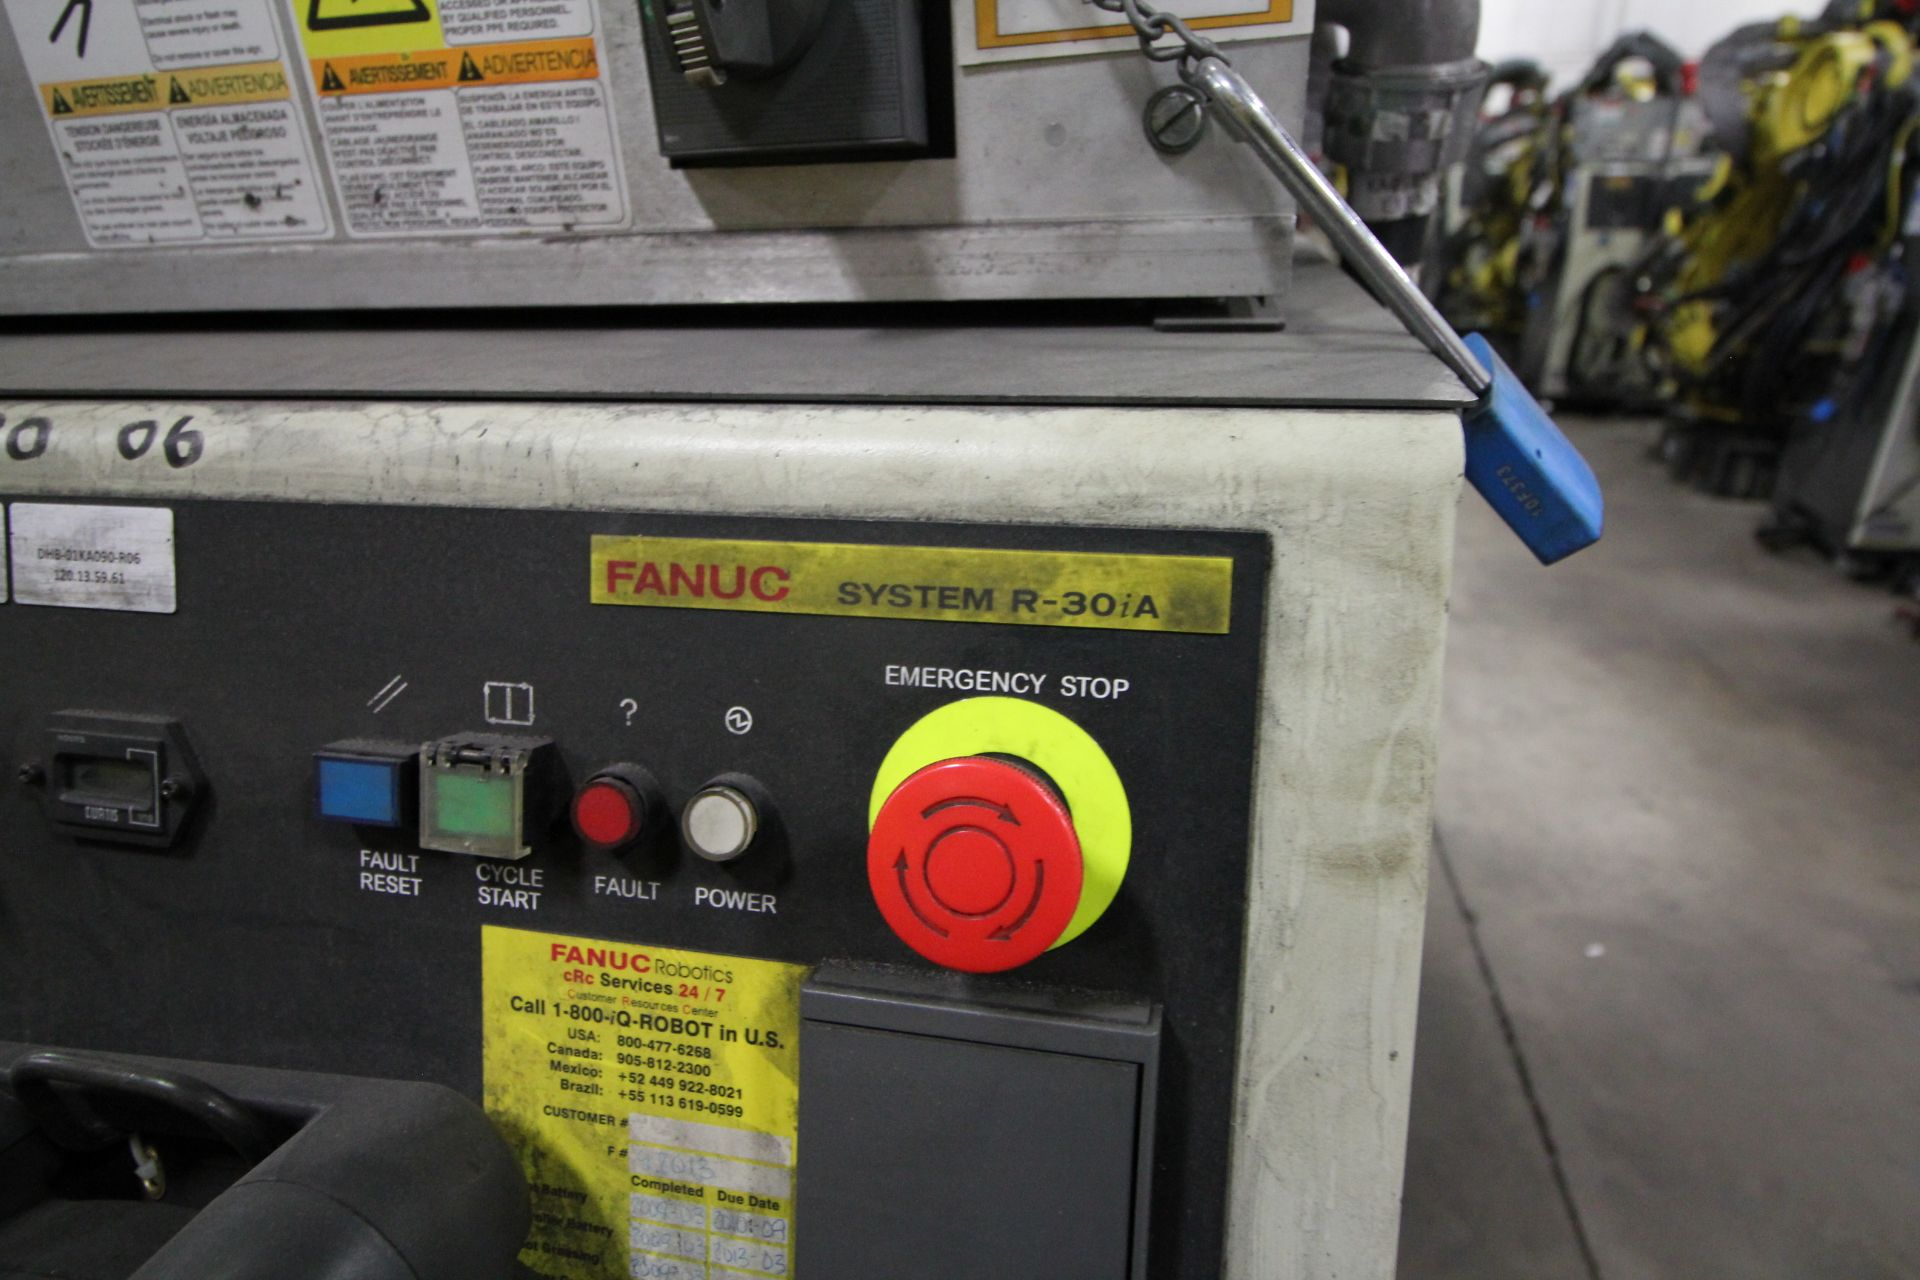 FANUC ROBOT R-2000iB/210F WITH R-30iA CONTROL, CABLES & TEACH PENDANT, SN 97013, YEAR 2009 - Image 5 of 8